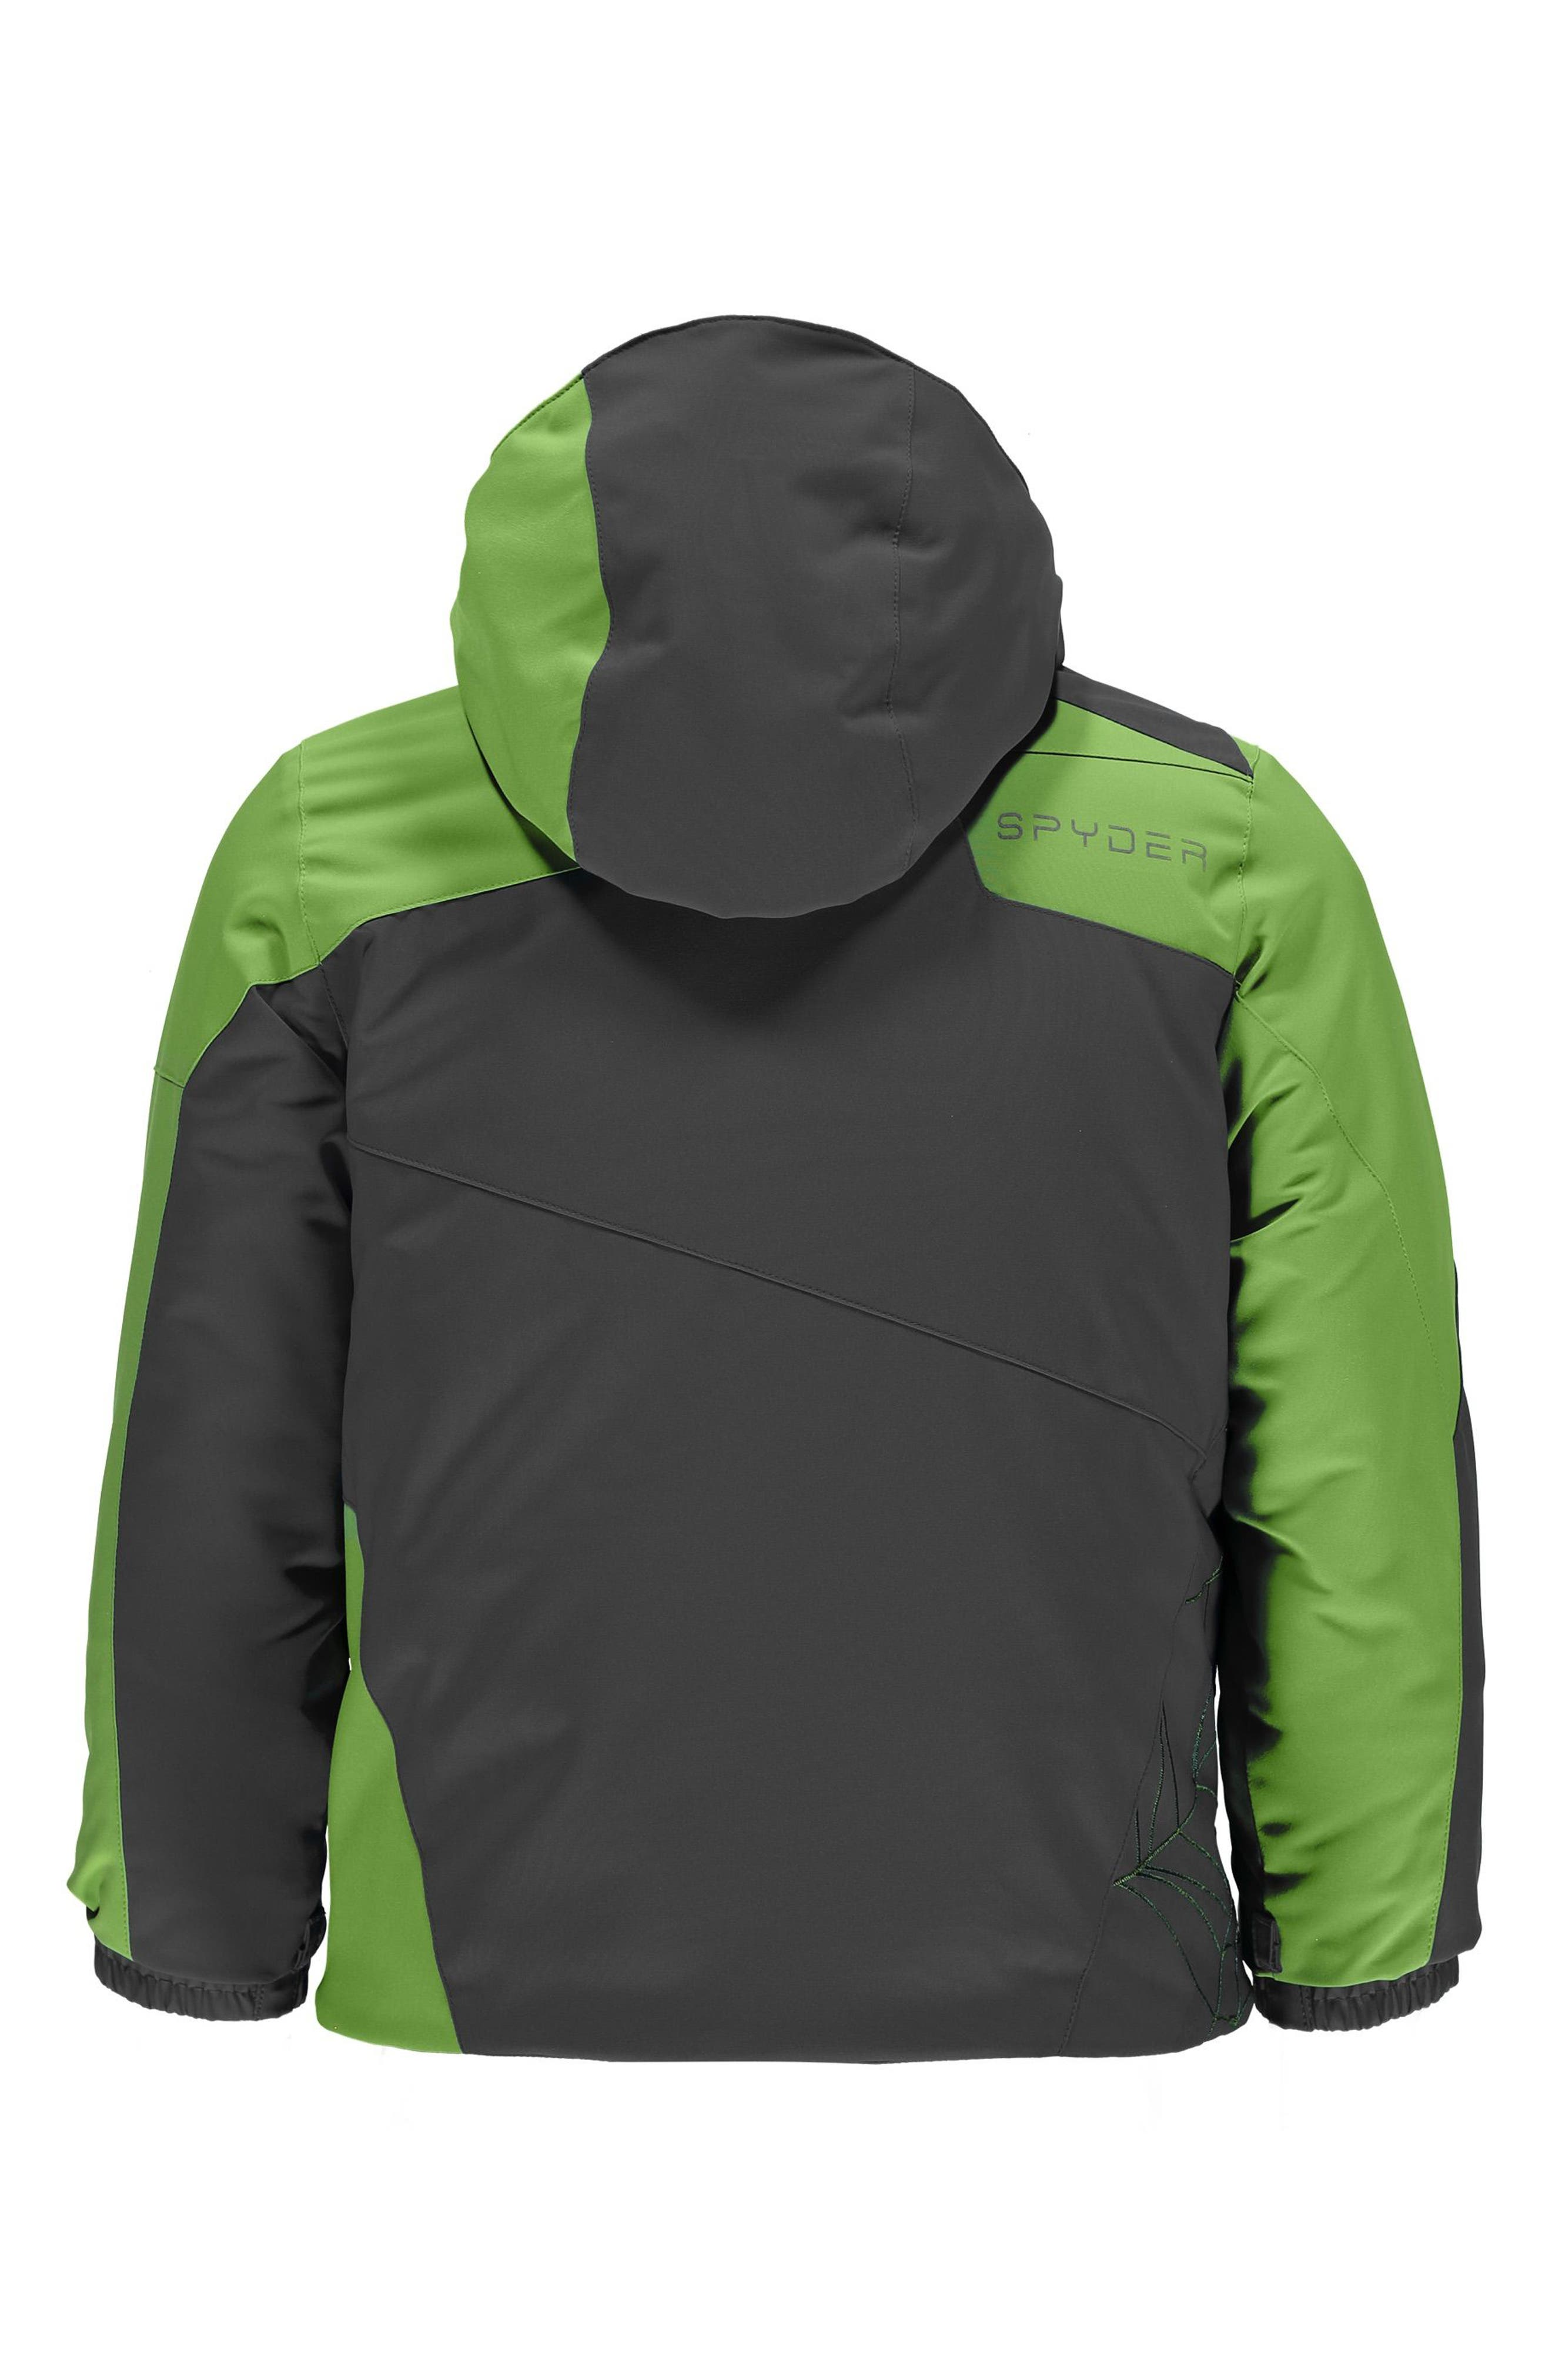 Mini Guard Insulated Waterproof Jacket,                         Main,                         color, 069